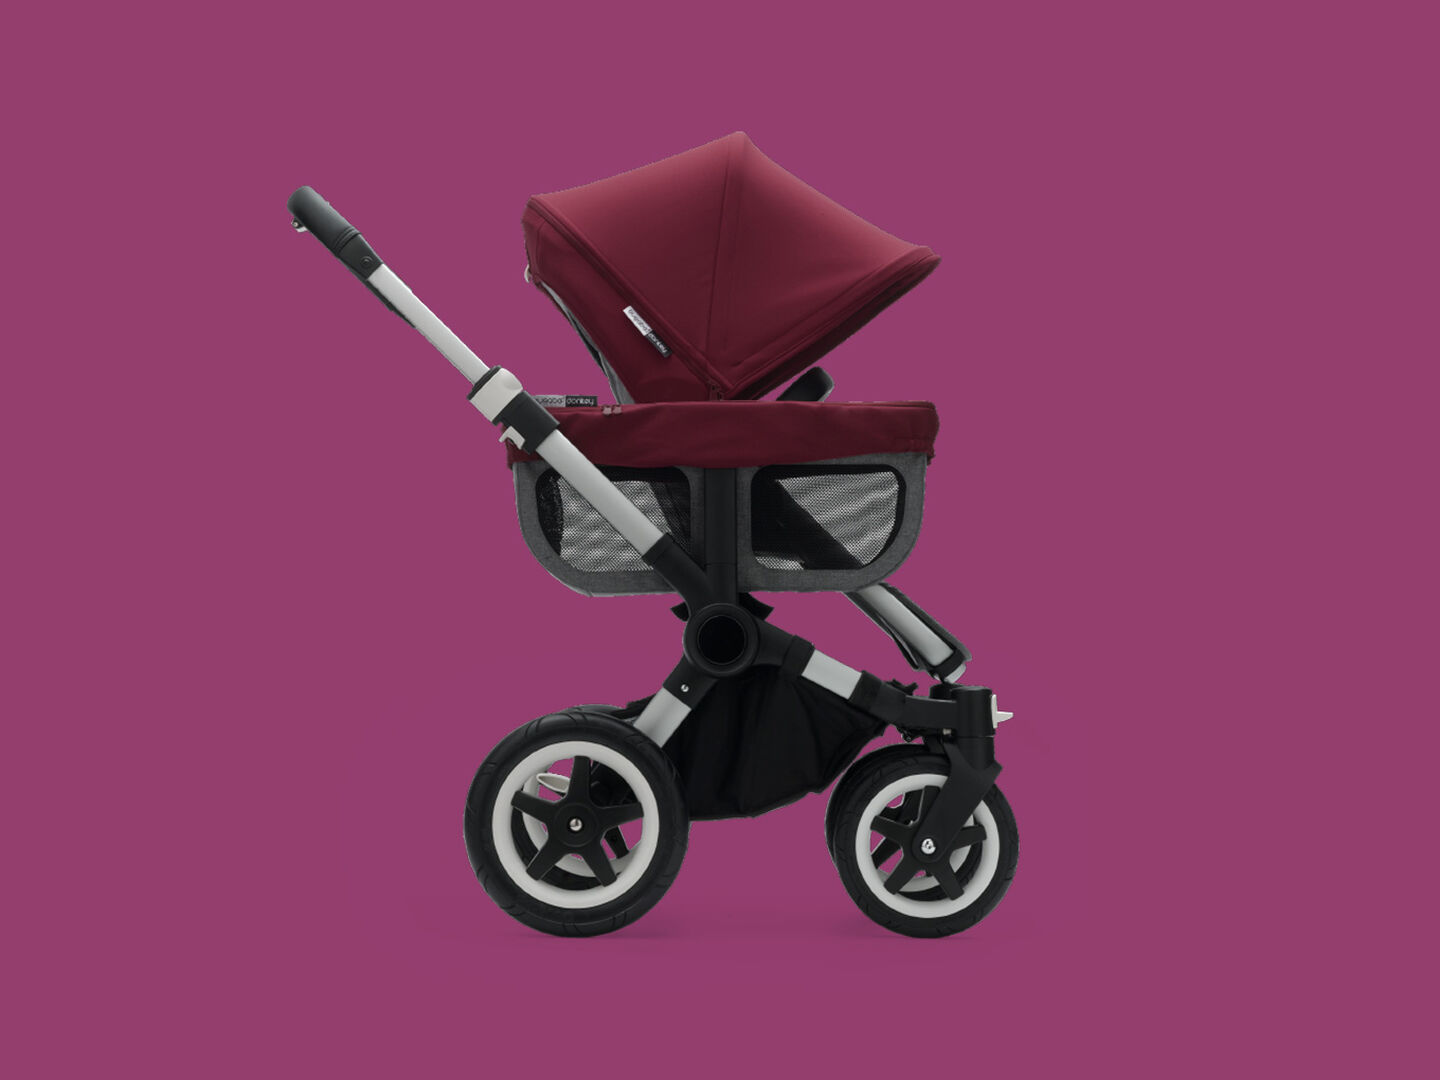 Meet the Bugaboo Donkey 2 Family